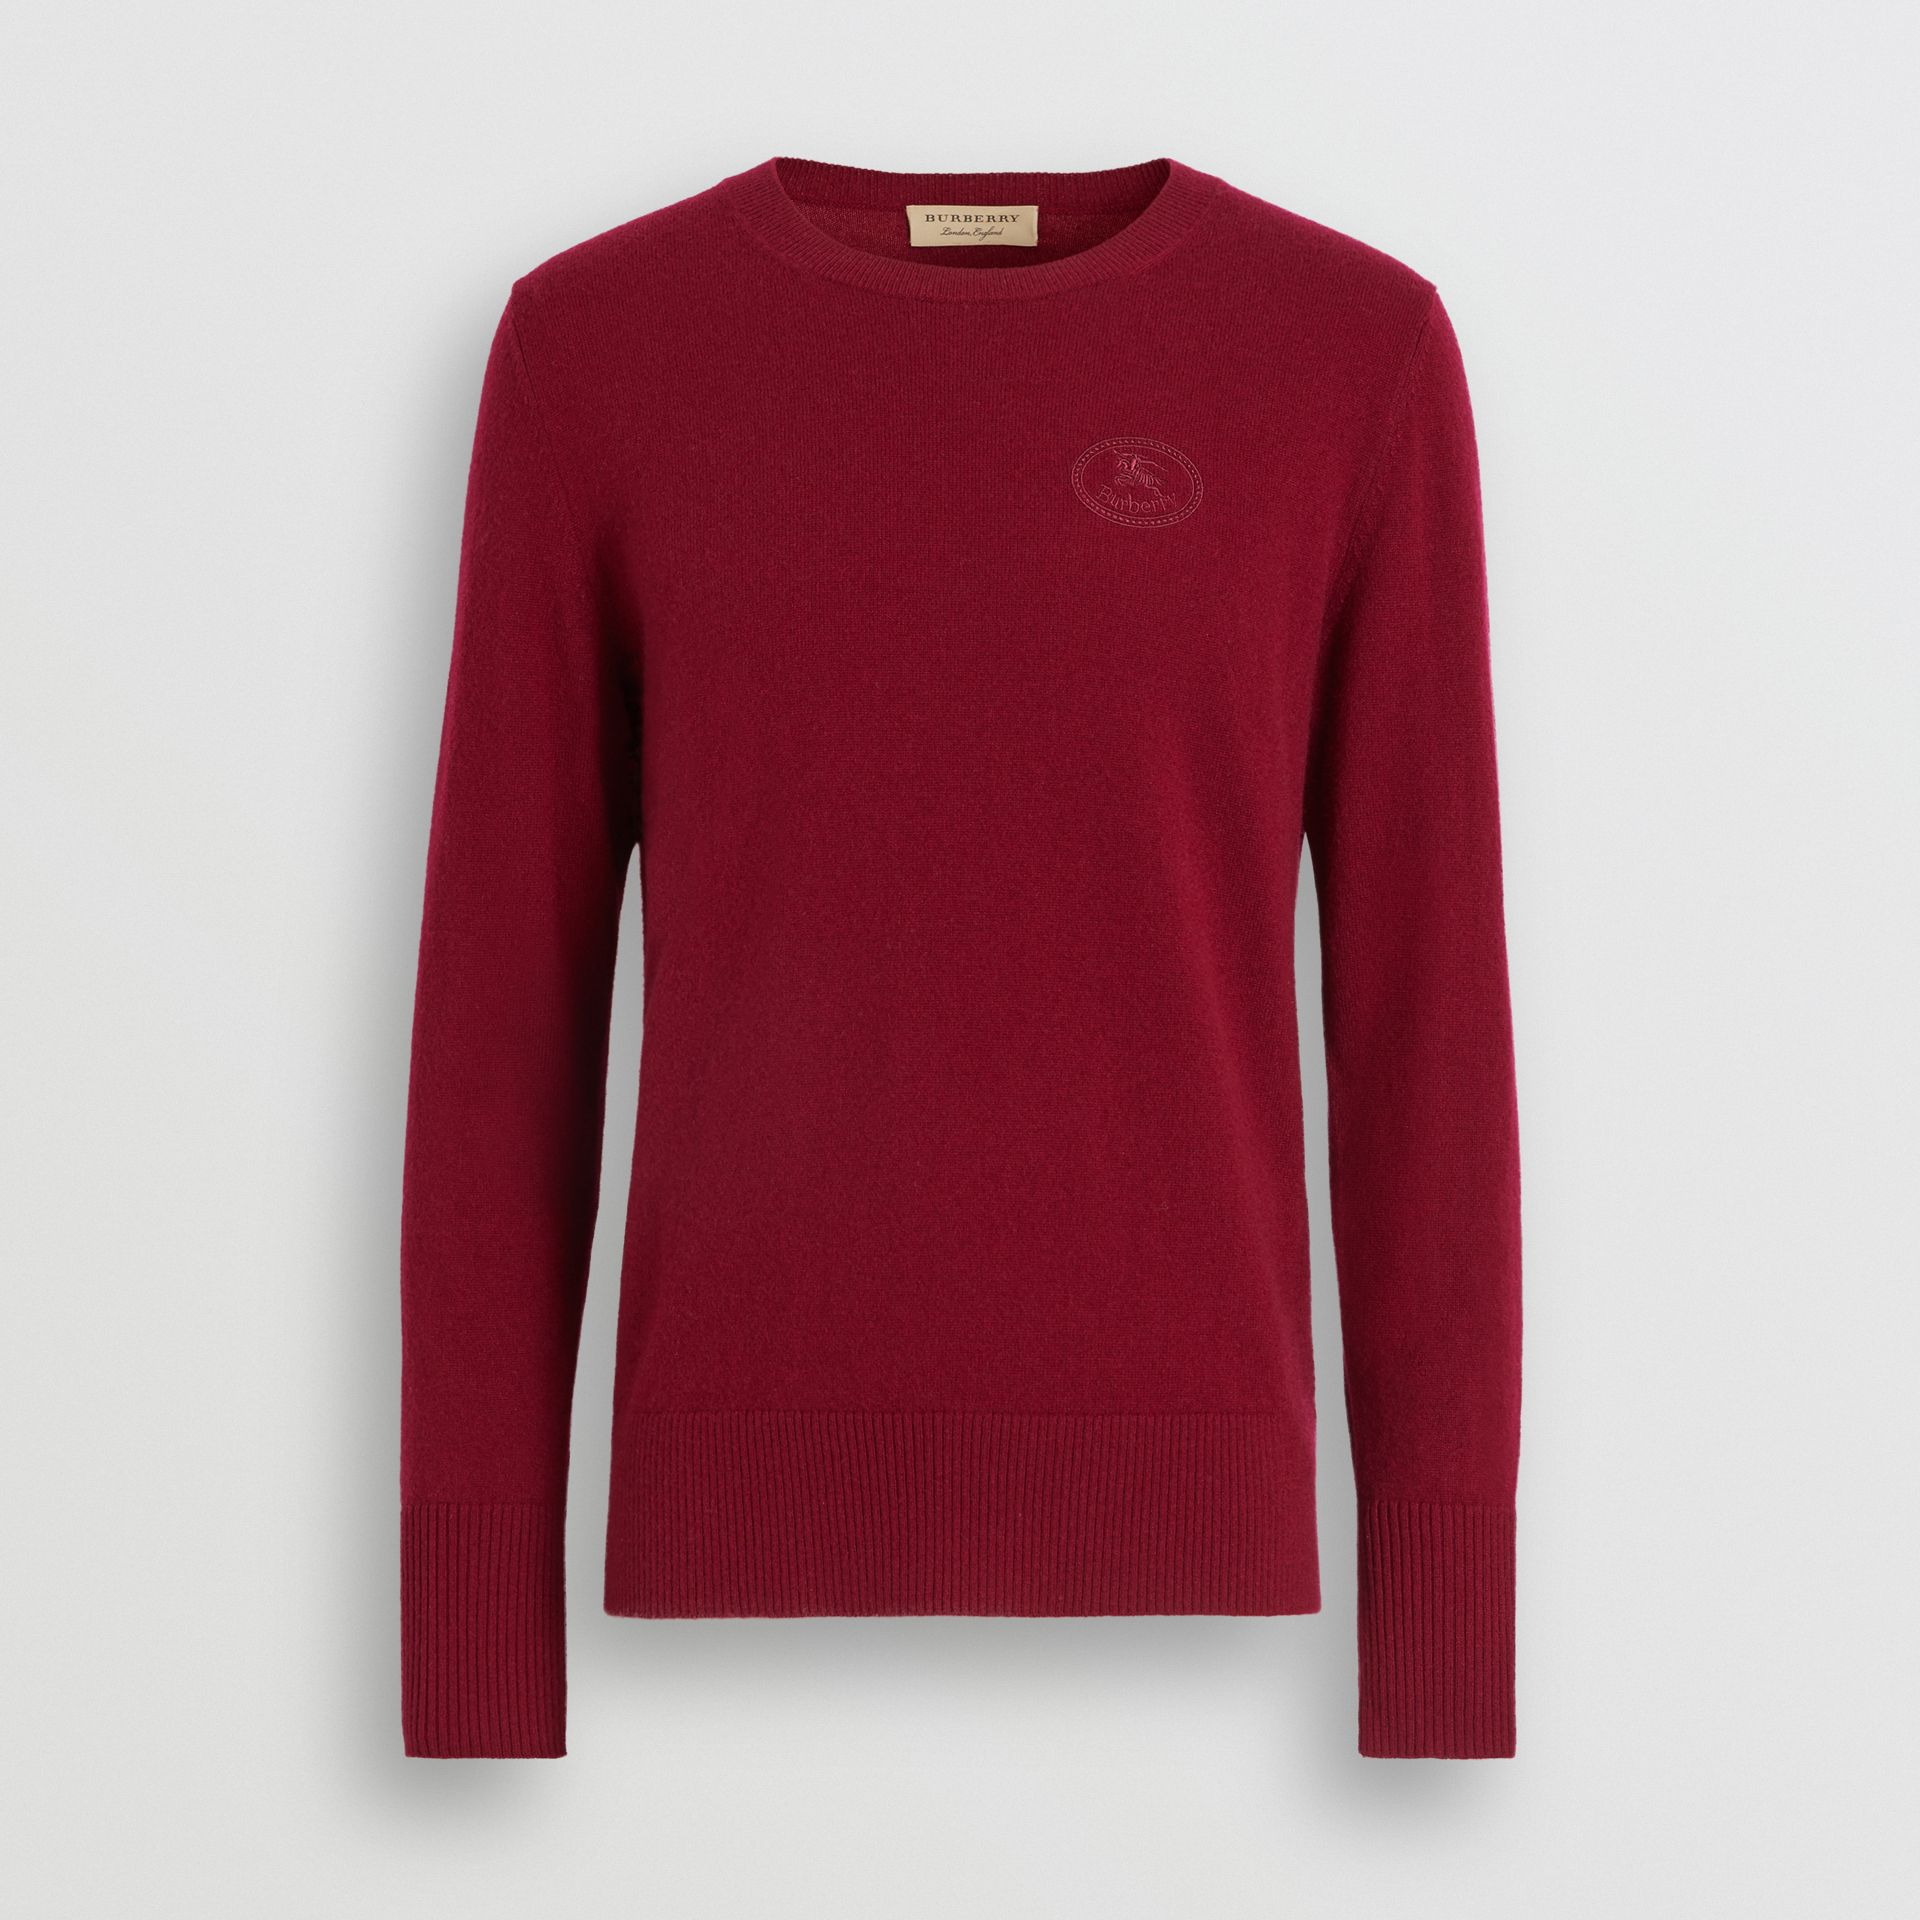 Embroidered Logo Cashmere Sweater in Claret - Men | Burberry Hong Kong - gallery image 3